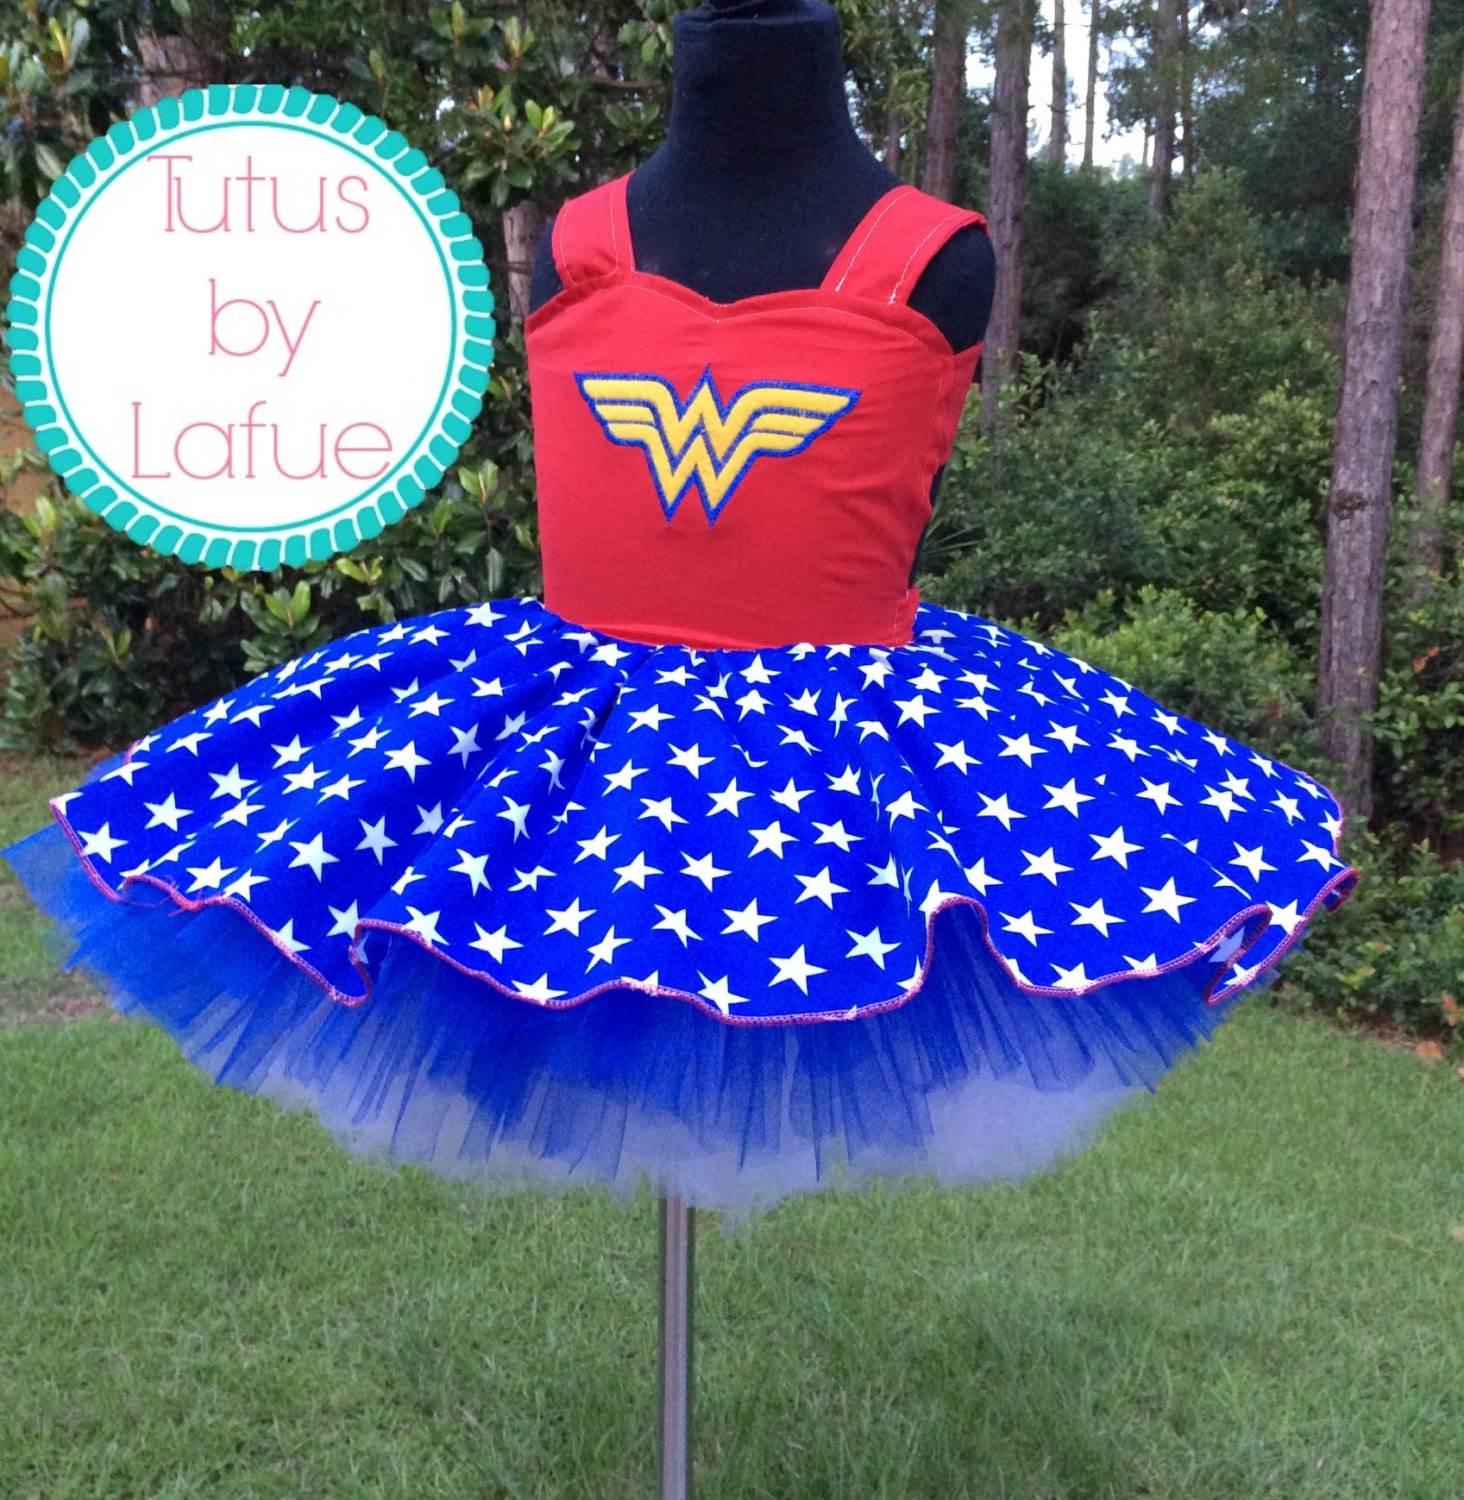 Wonder Woman Tutu Dress By TutusbyLafue On Etsy